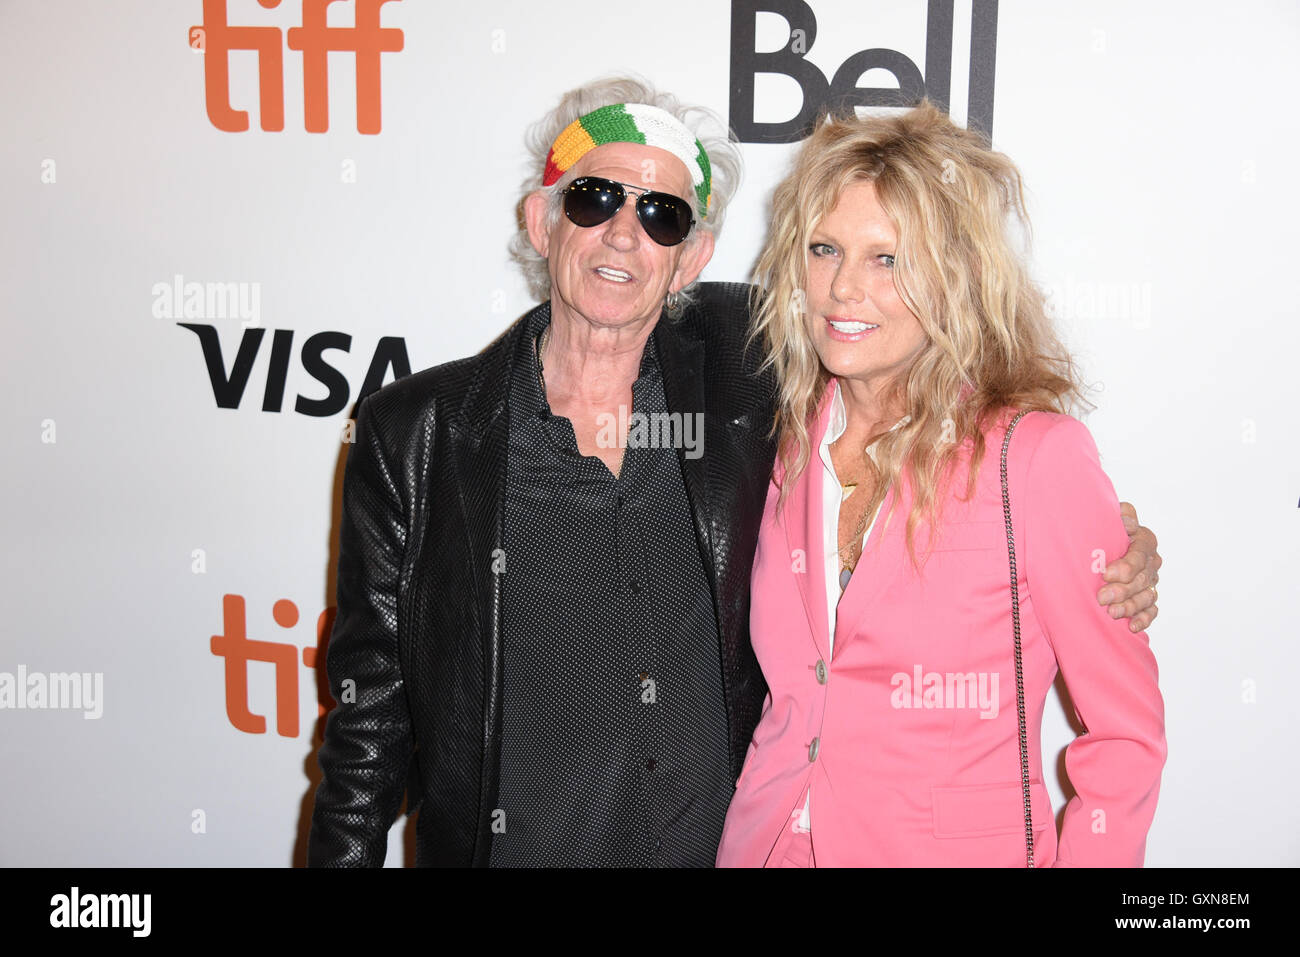 Toronto, Ontario, Canada. 16th Sep, 2016. The Rollings Stones guitarist KEITH RICHARDS and his wife PATTI HANSEN - Stock Image